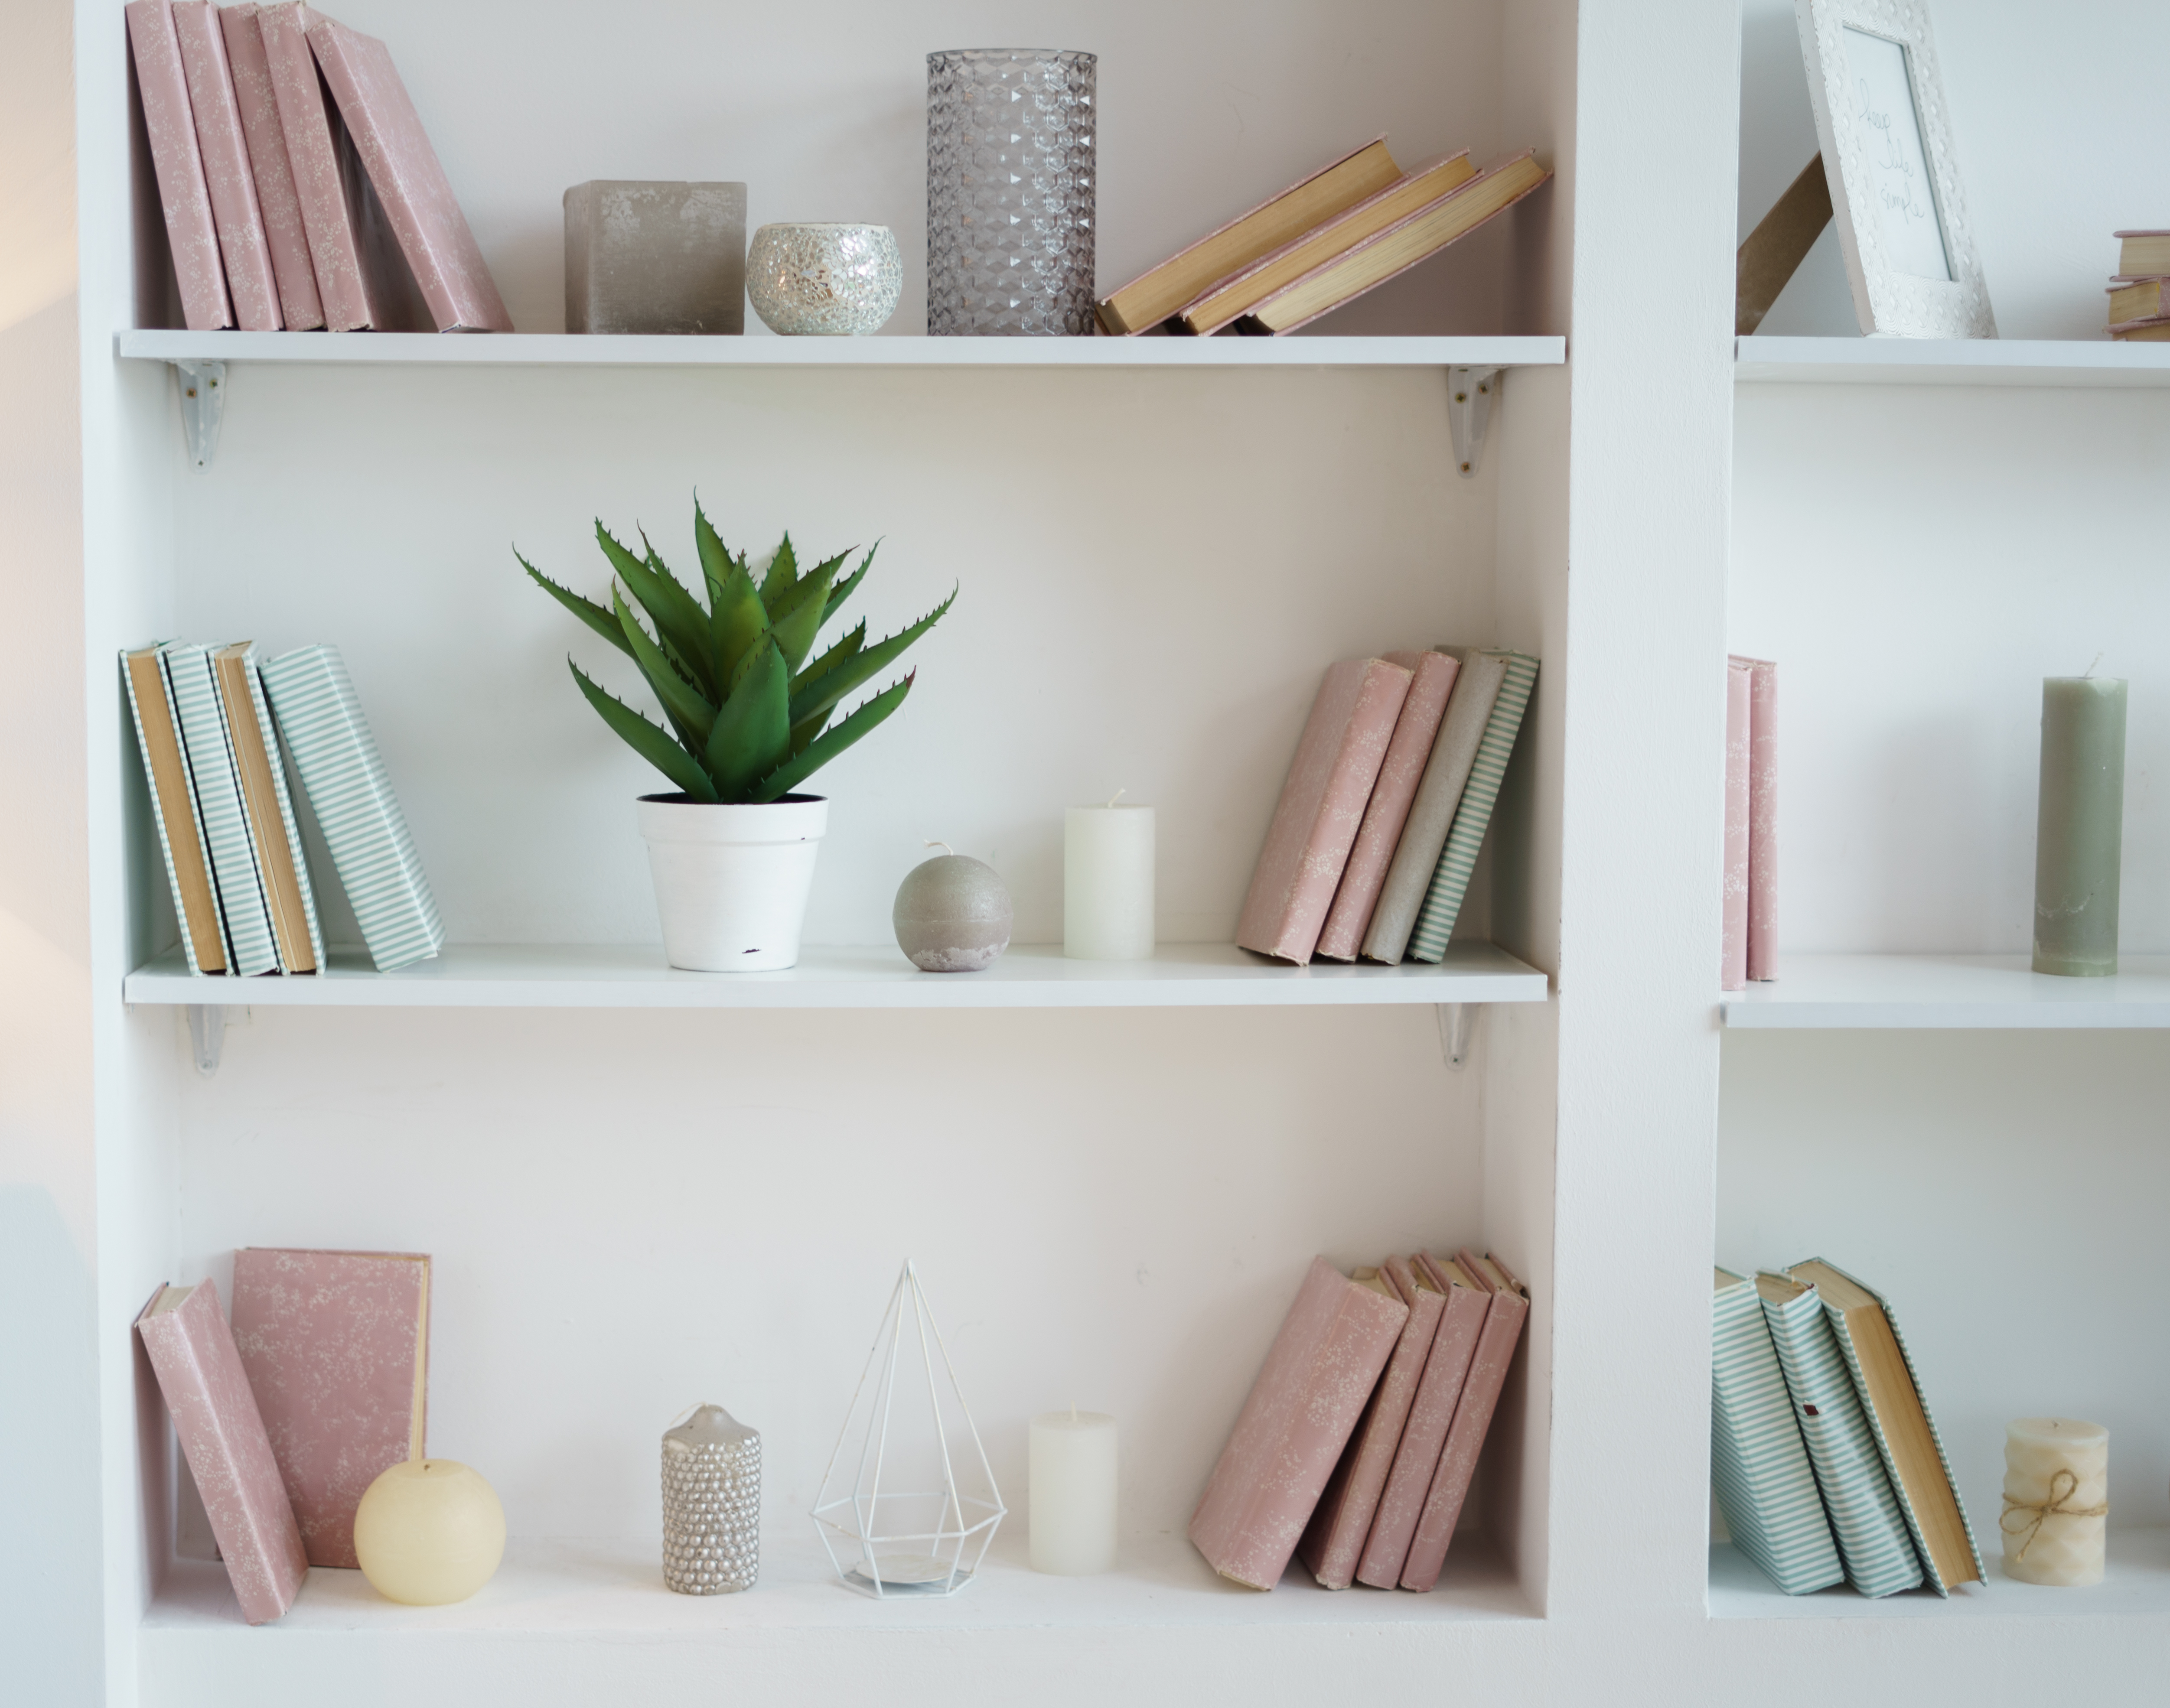 bookcase with pink and blue books. plant